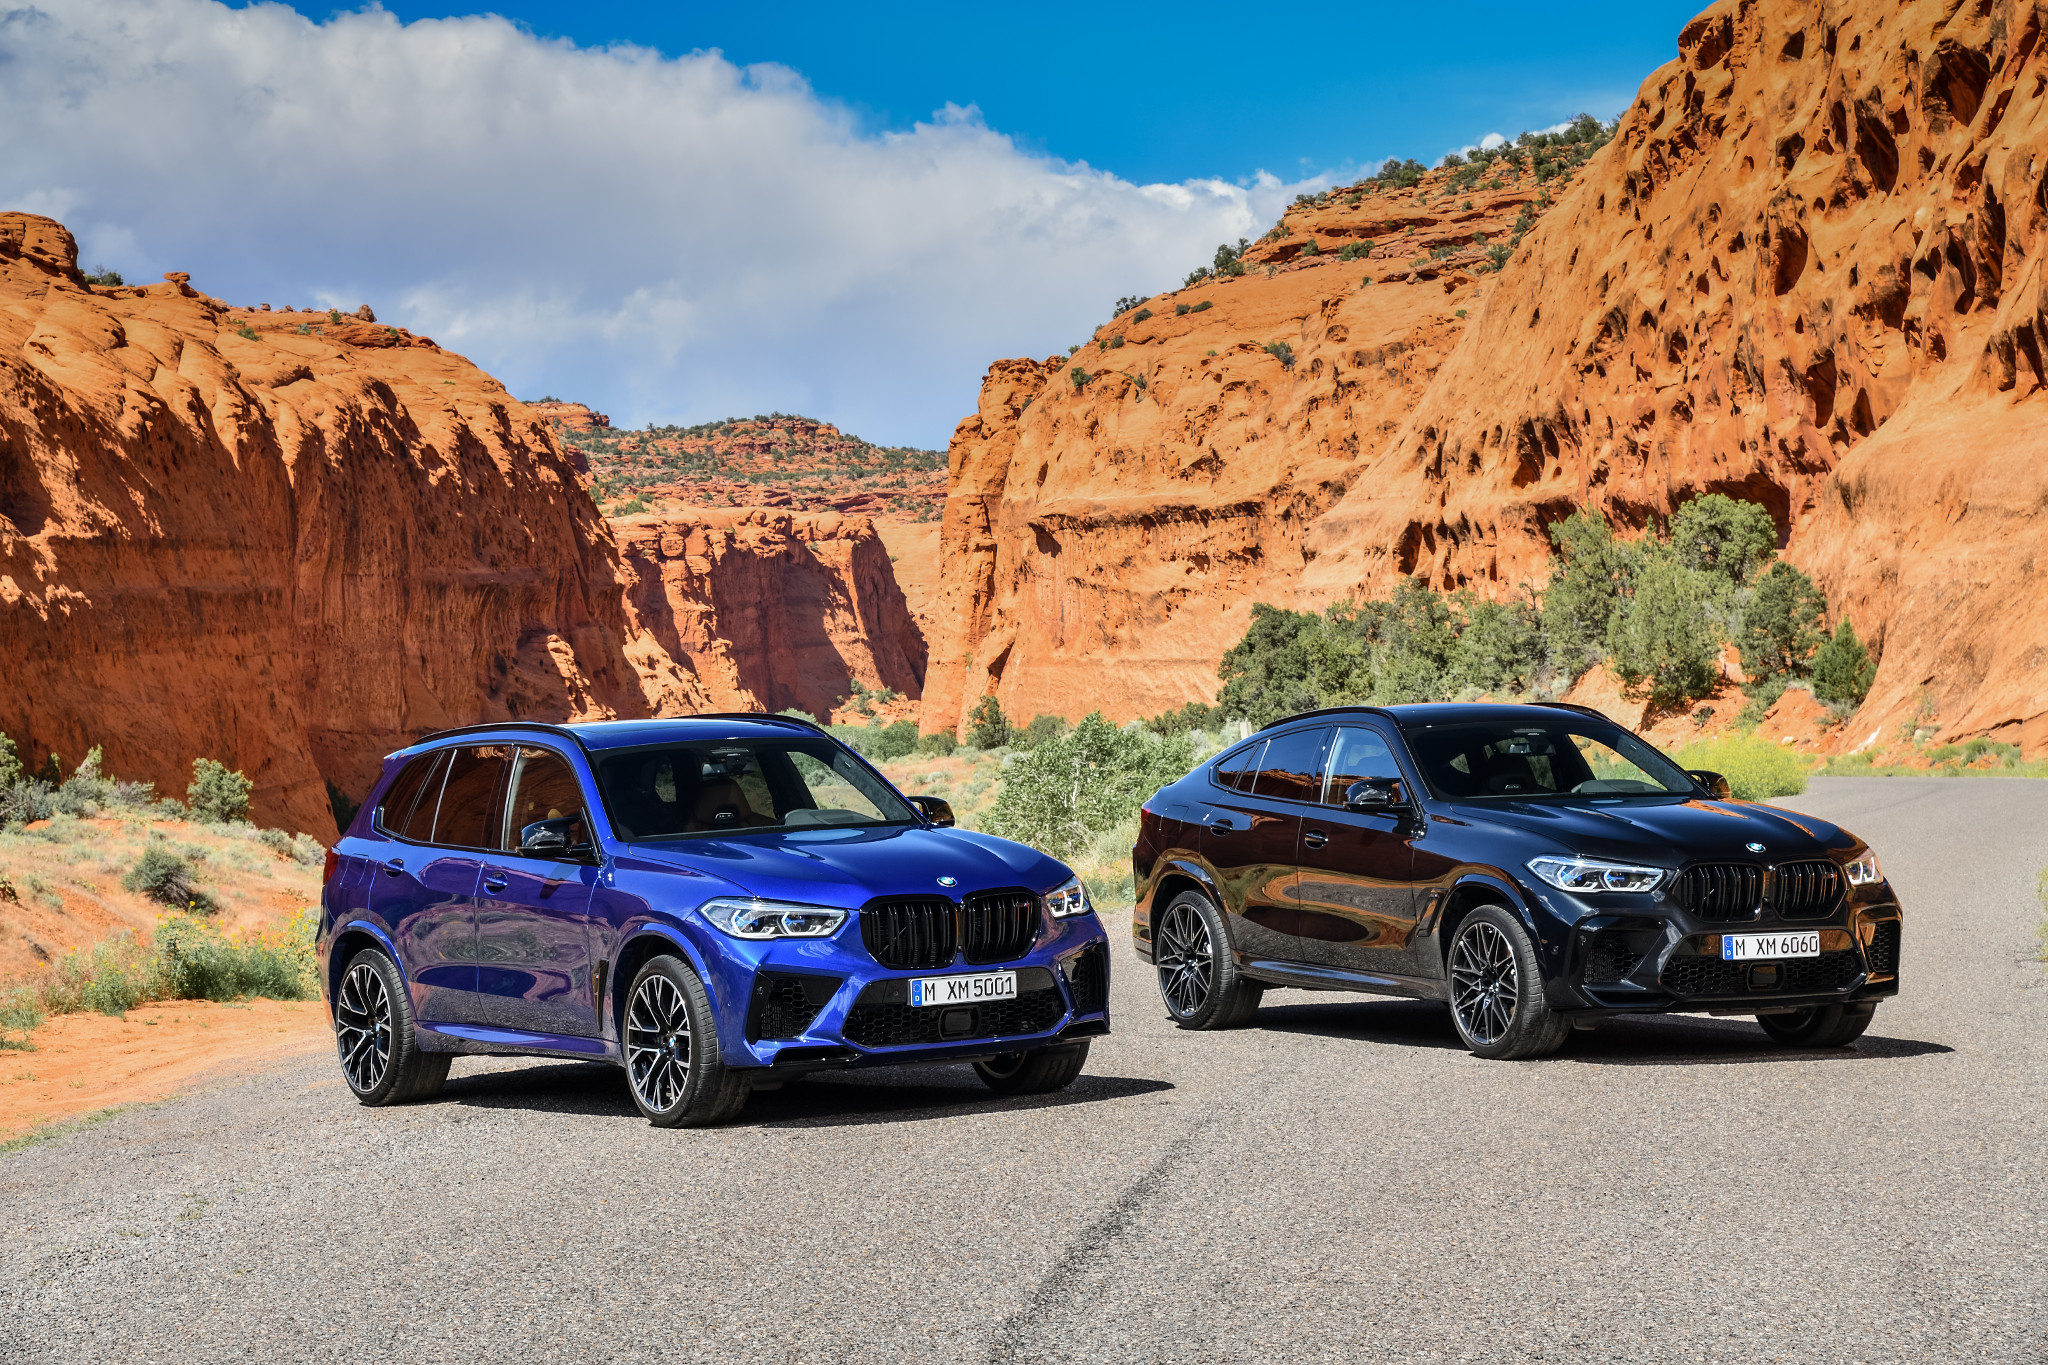 2020 BMW X5 M and X6 M: SUVs With Scoot